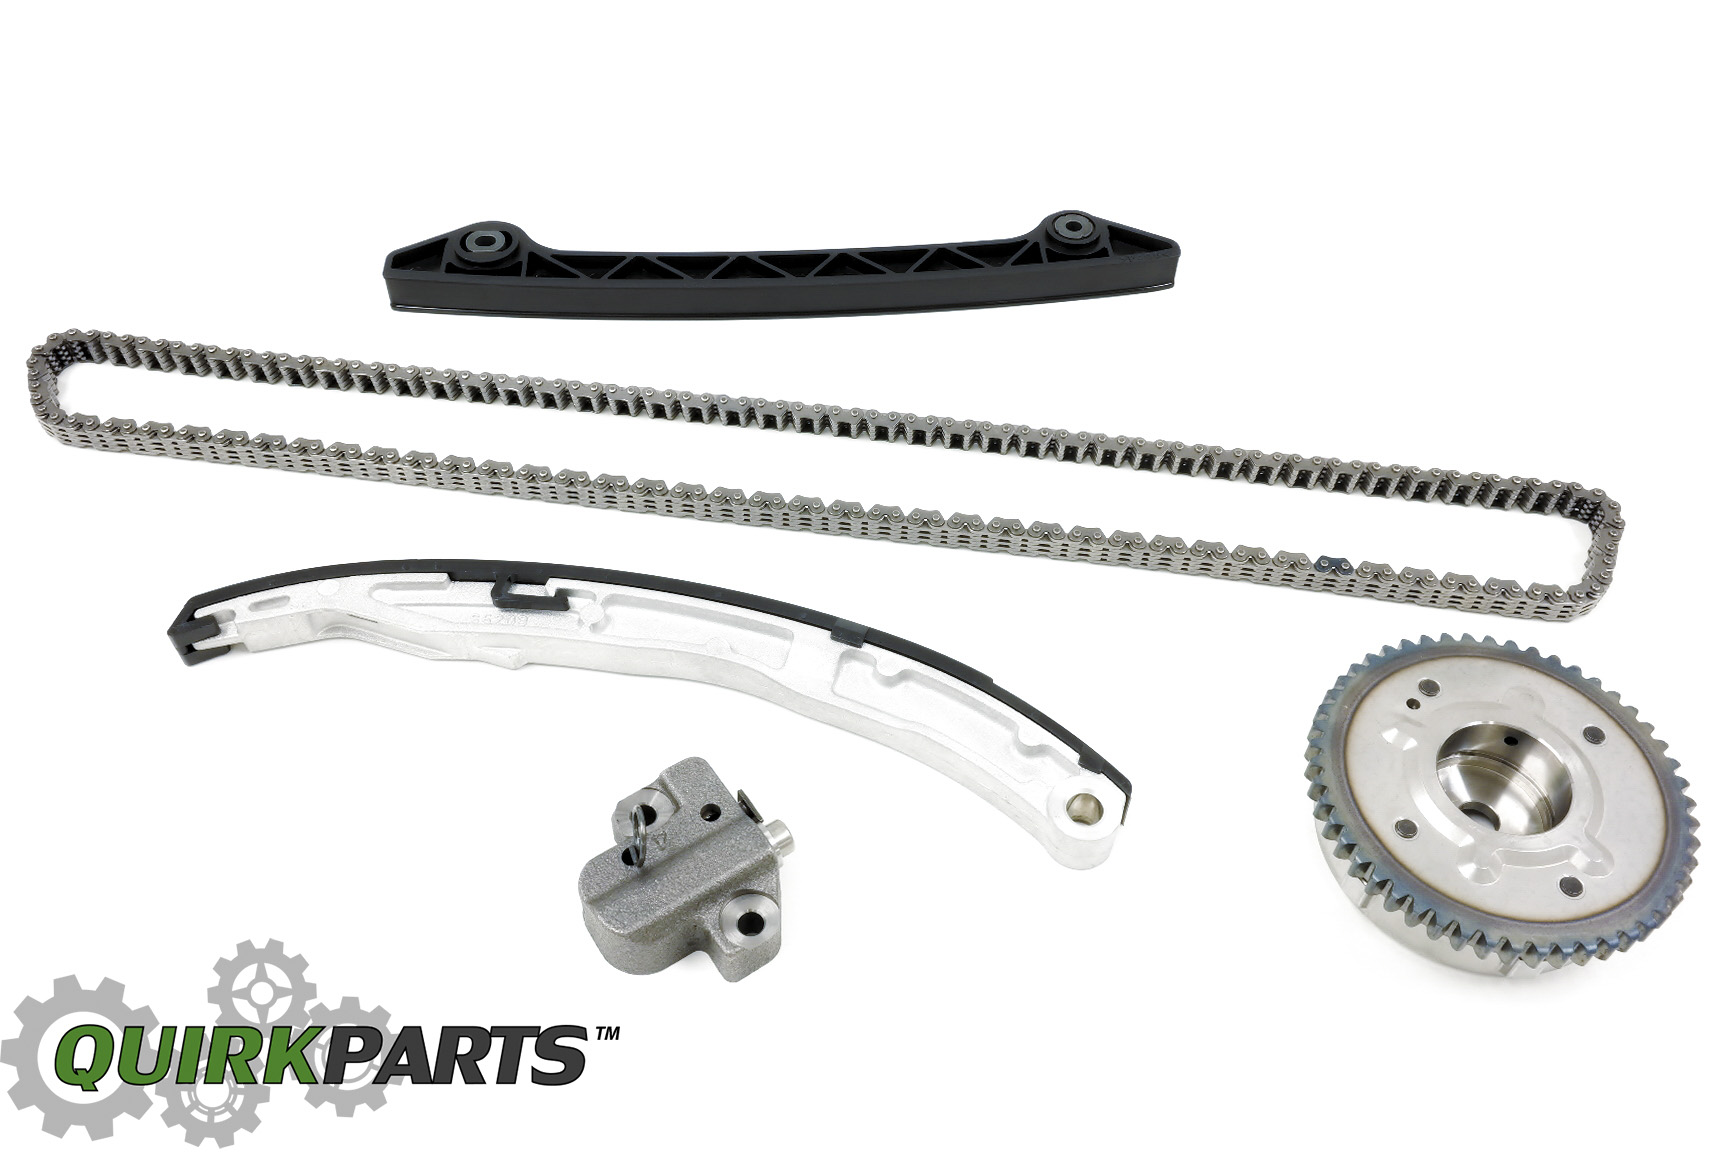 Mazda3 5 6 Tribute Timing Chain W Actuator Amp Guide Levers W Tensioner Oem